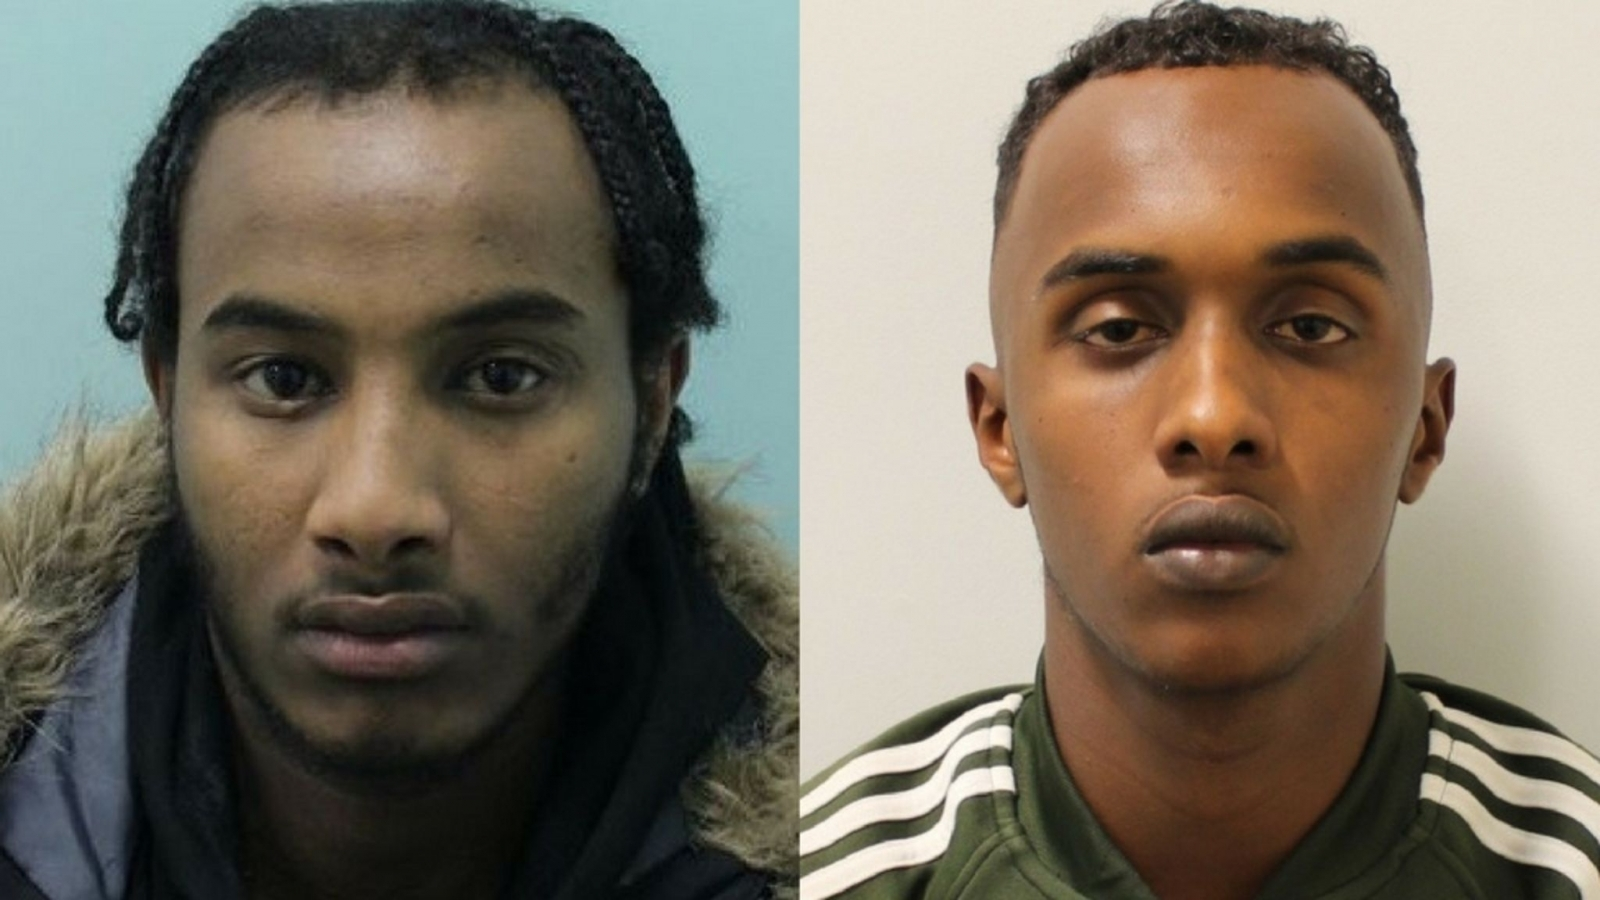 British Drug Slaves Gang Members Guilty Of Grooming Teen